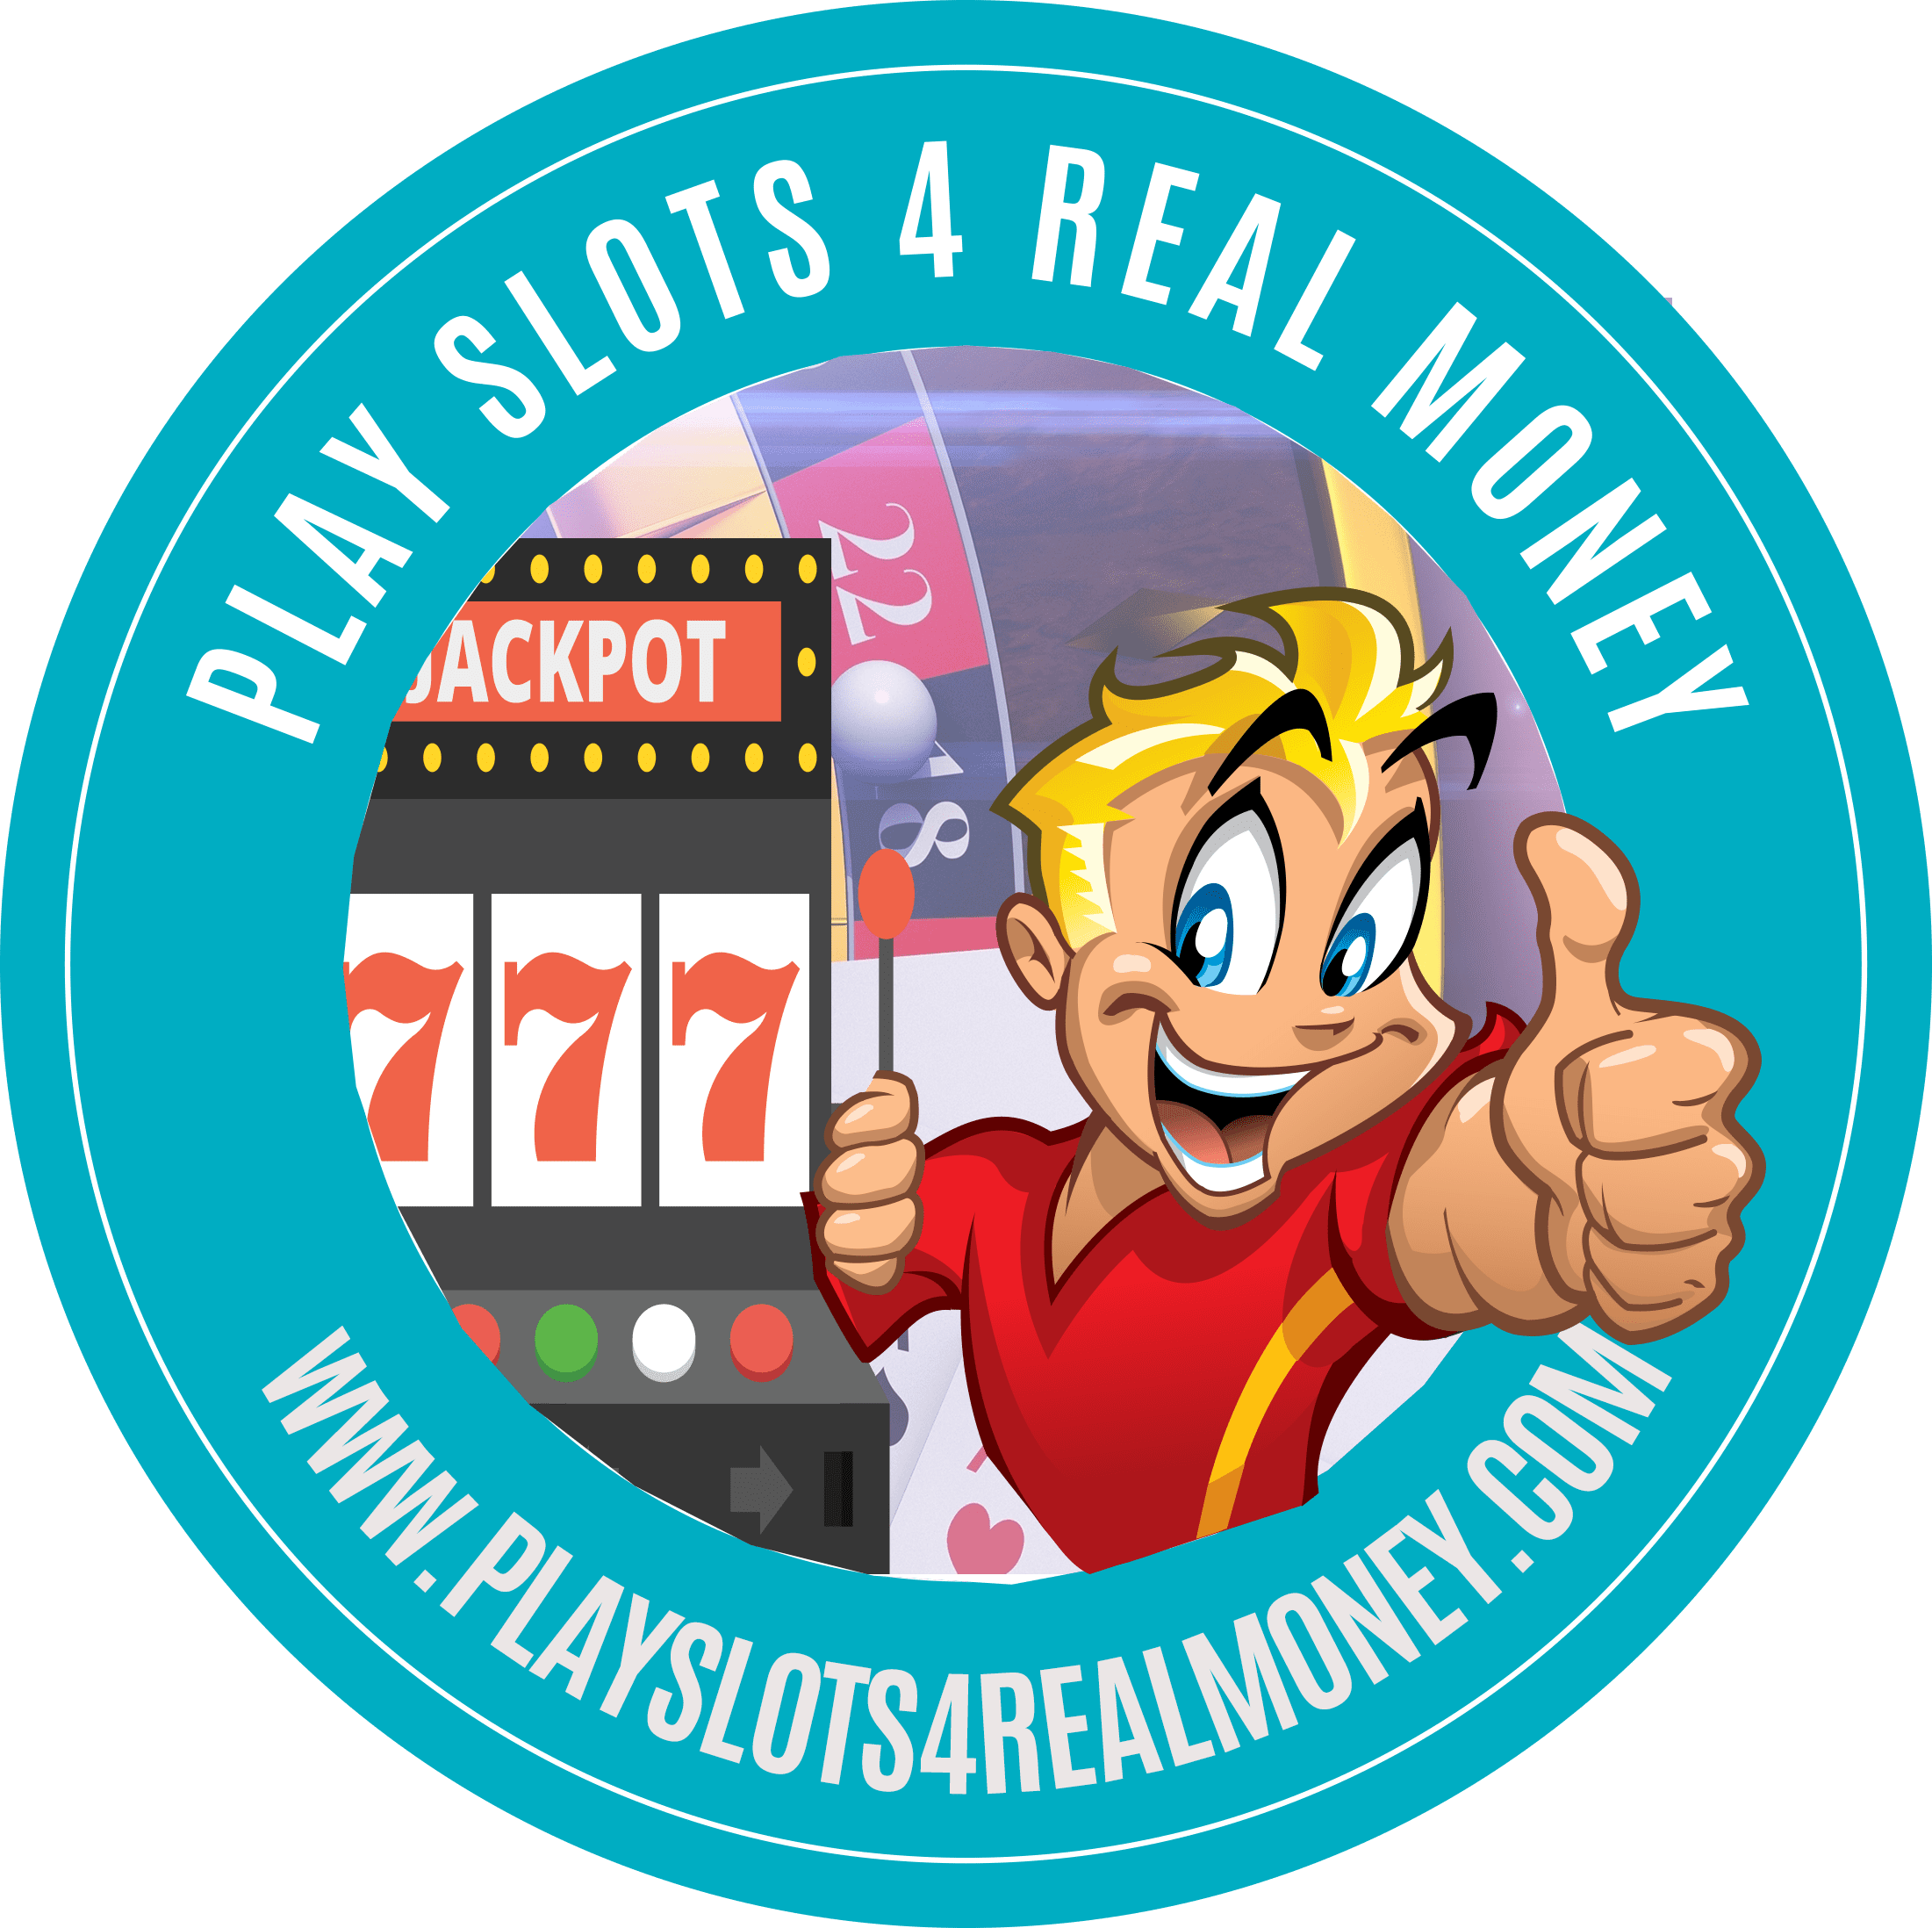 Play Slots 4 Real Money